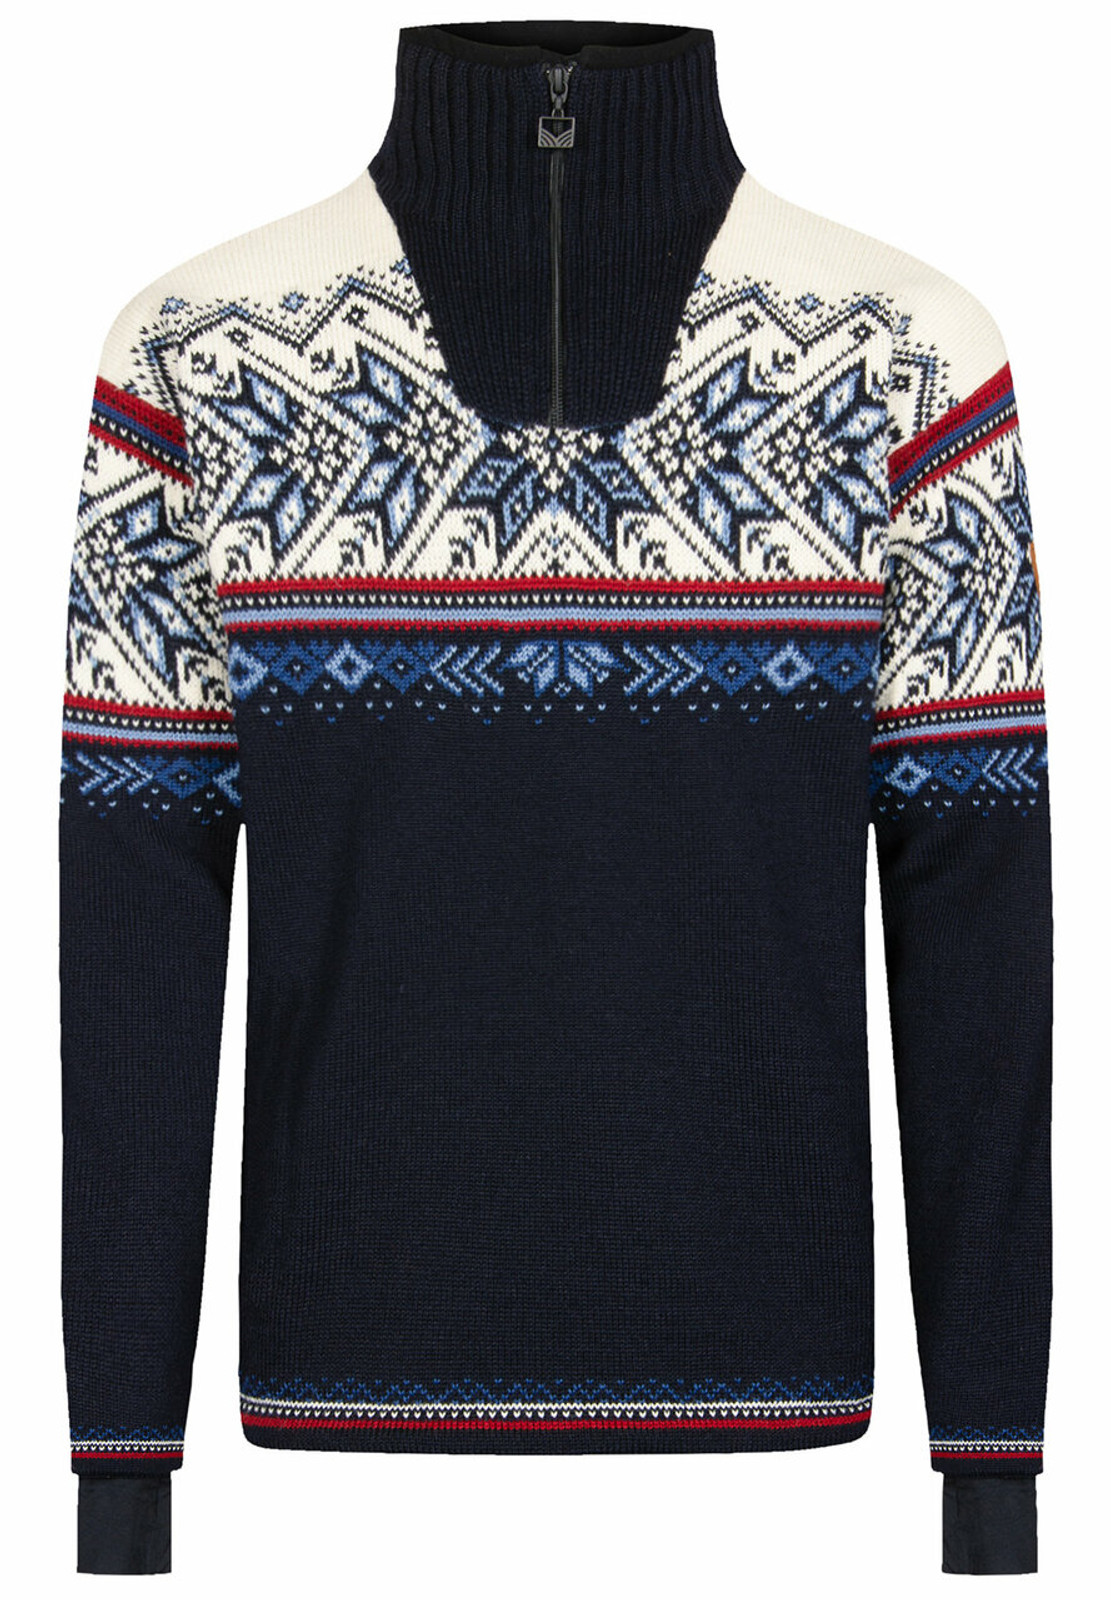 Dale of Norway Vail Weatherproof Sweater, Mens - Midnight Navy/Red Rose/Off White/Indigo/China Blue, 93981-C